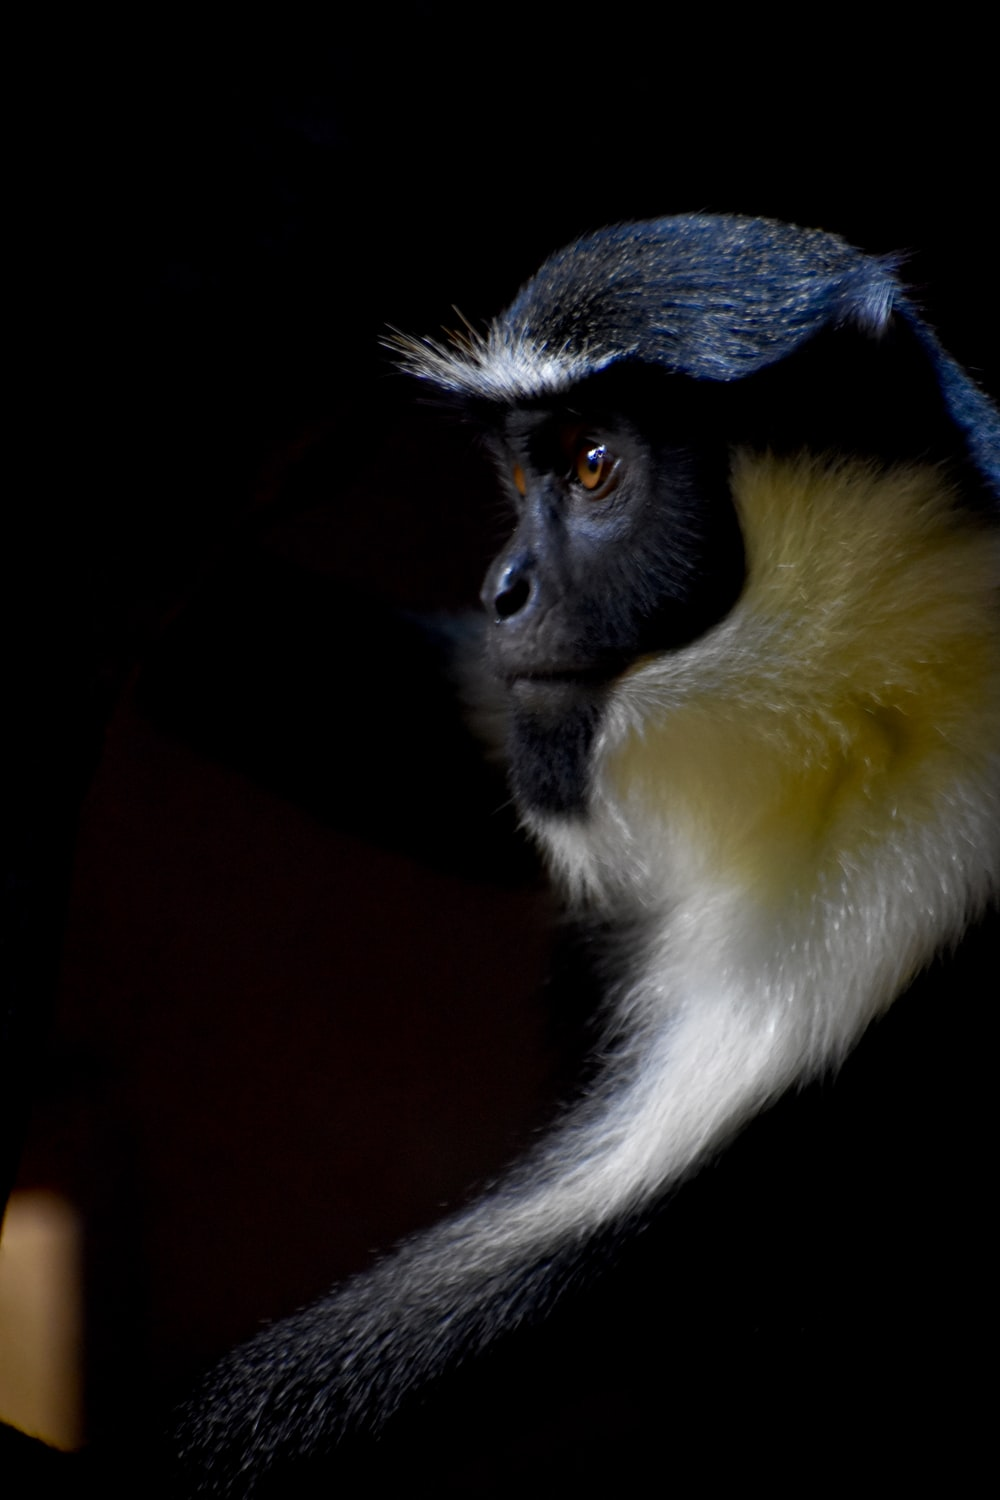 brown and yellow monkey